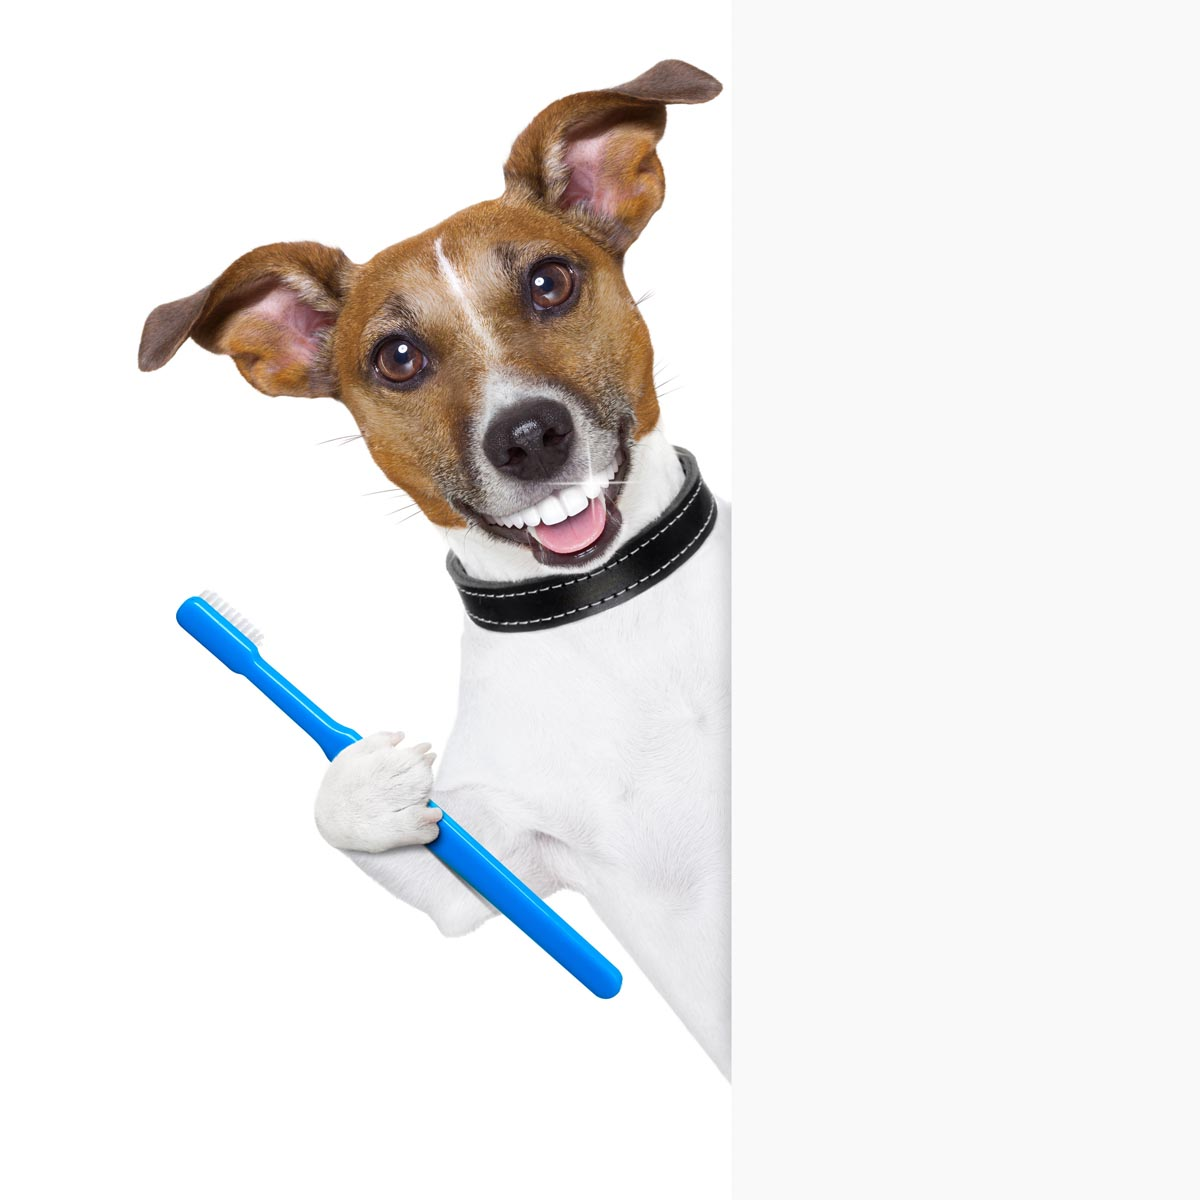 Dog With Toothbrush Dog With Toothbrush